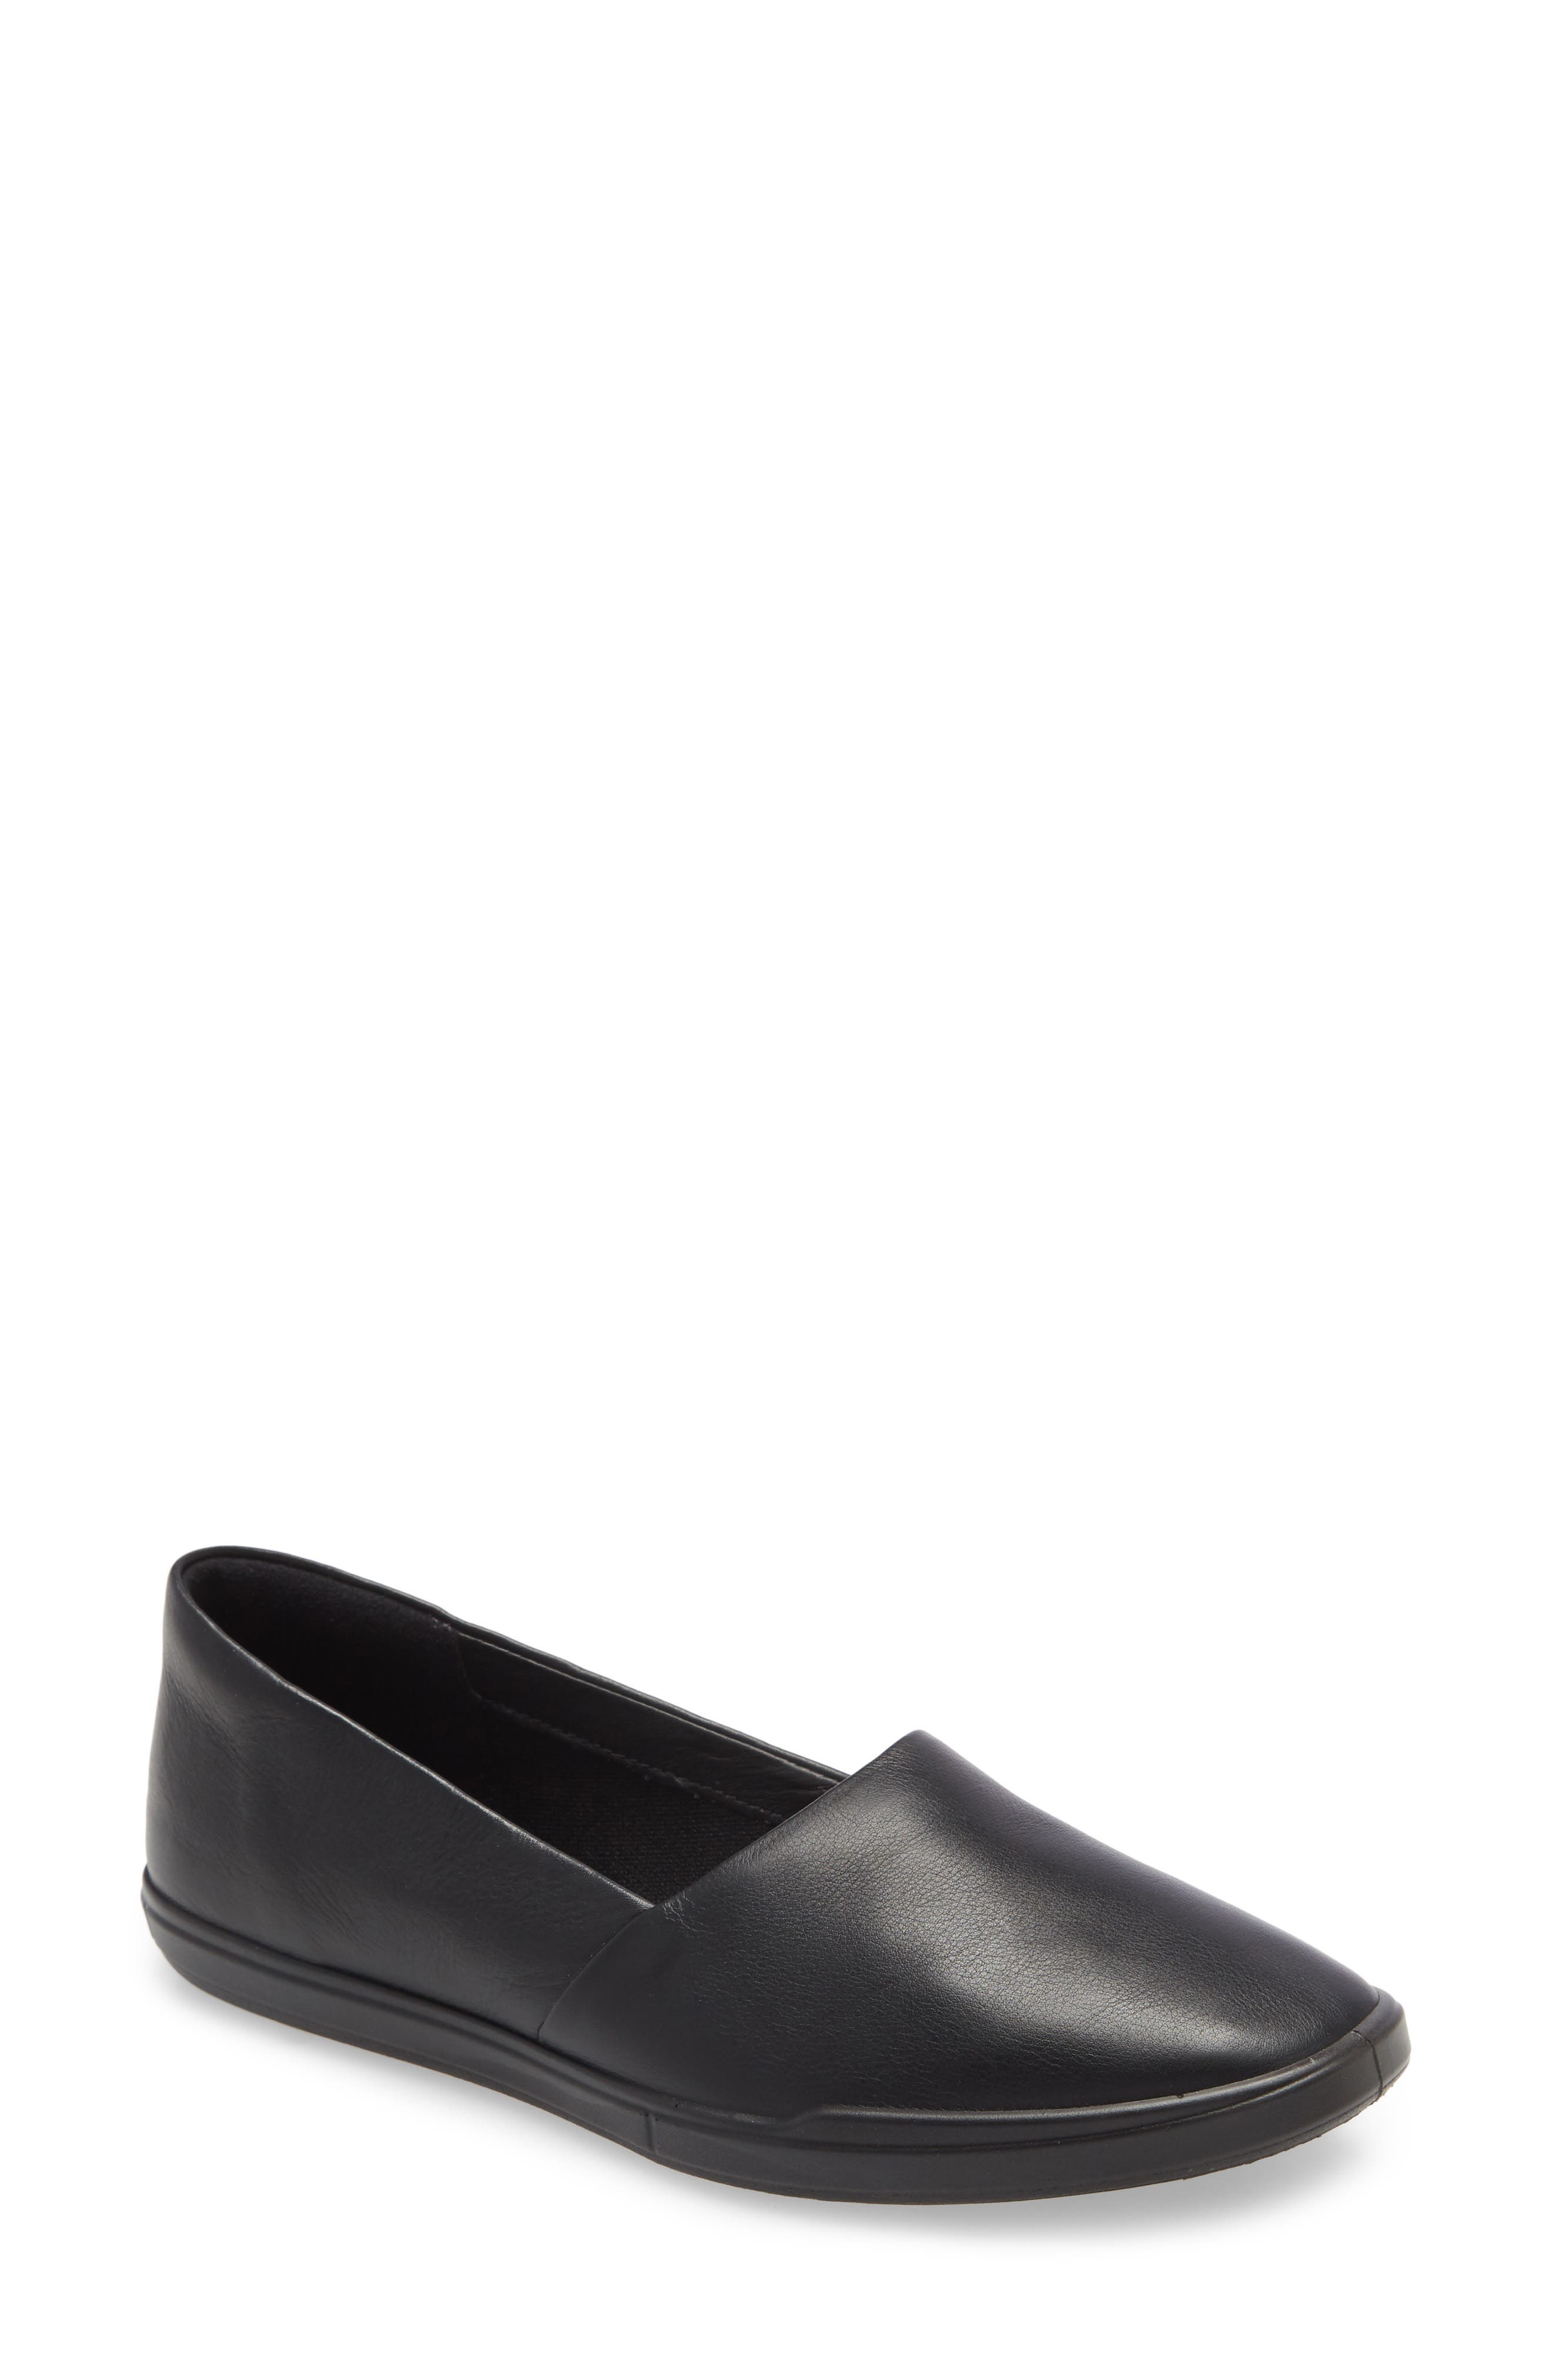 Women's Ecco Simpil Loafer